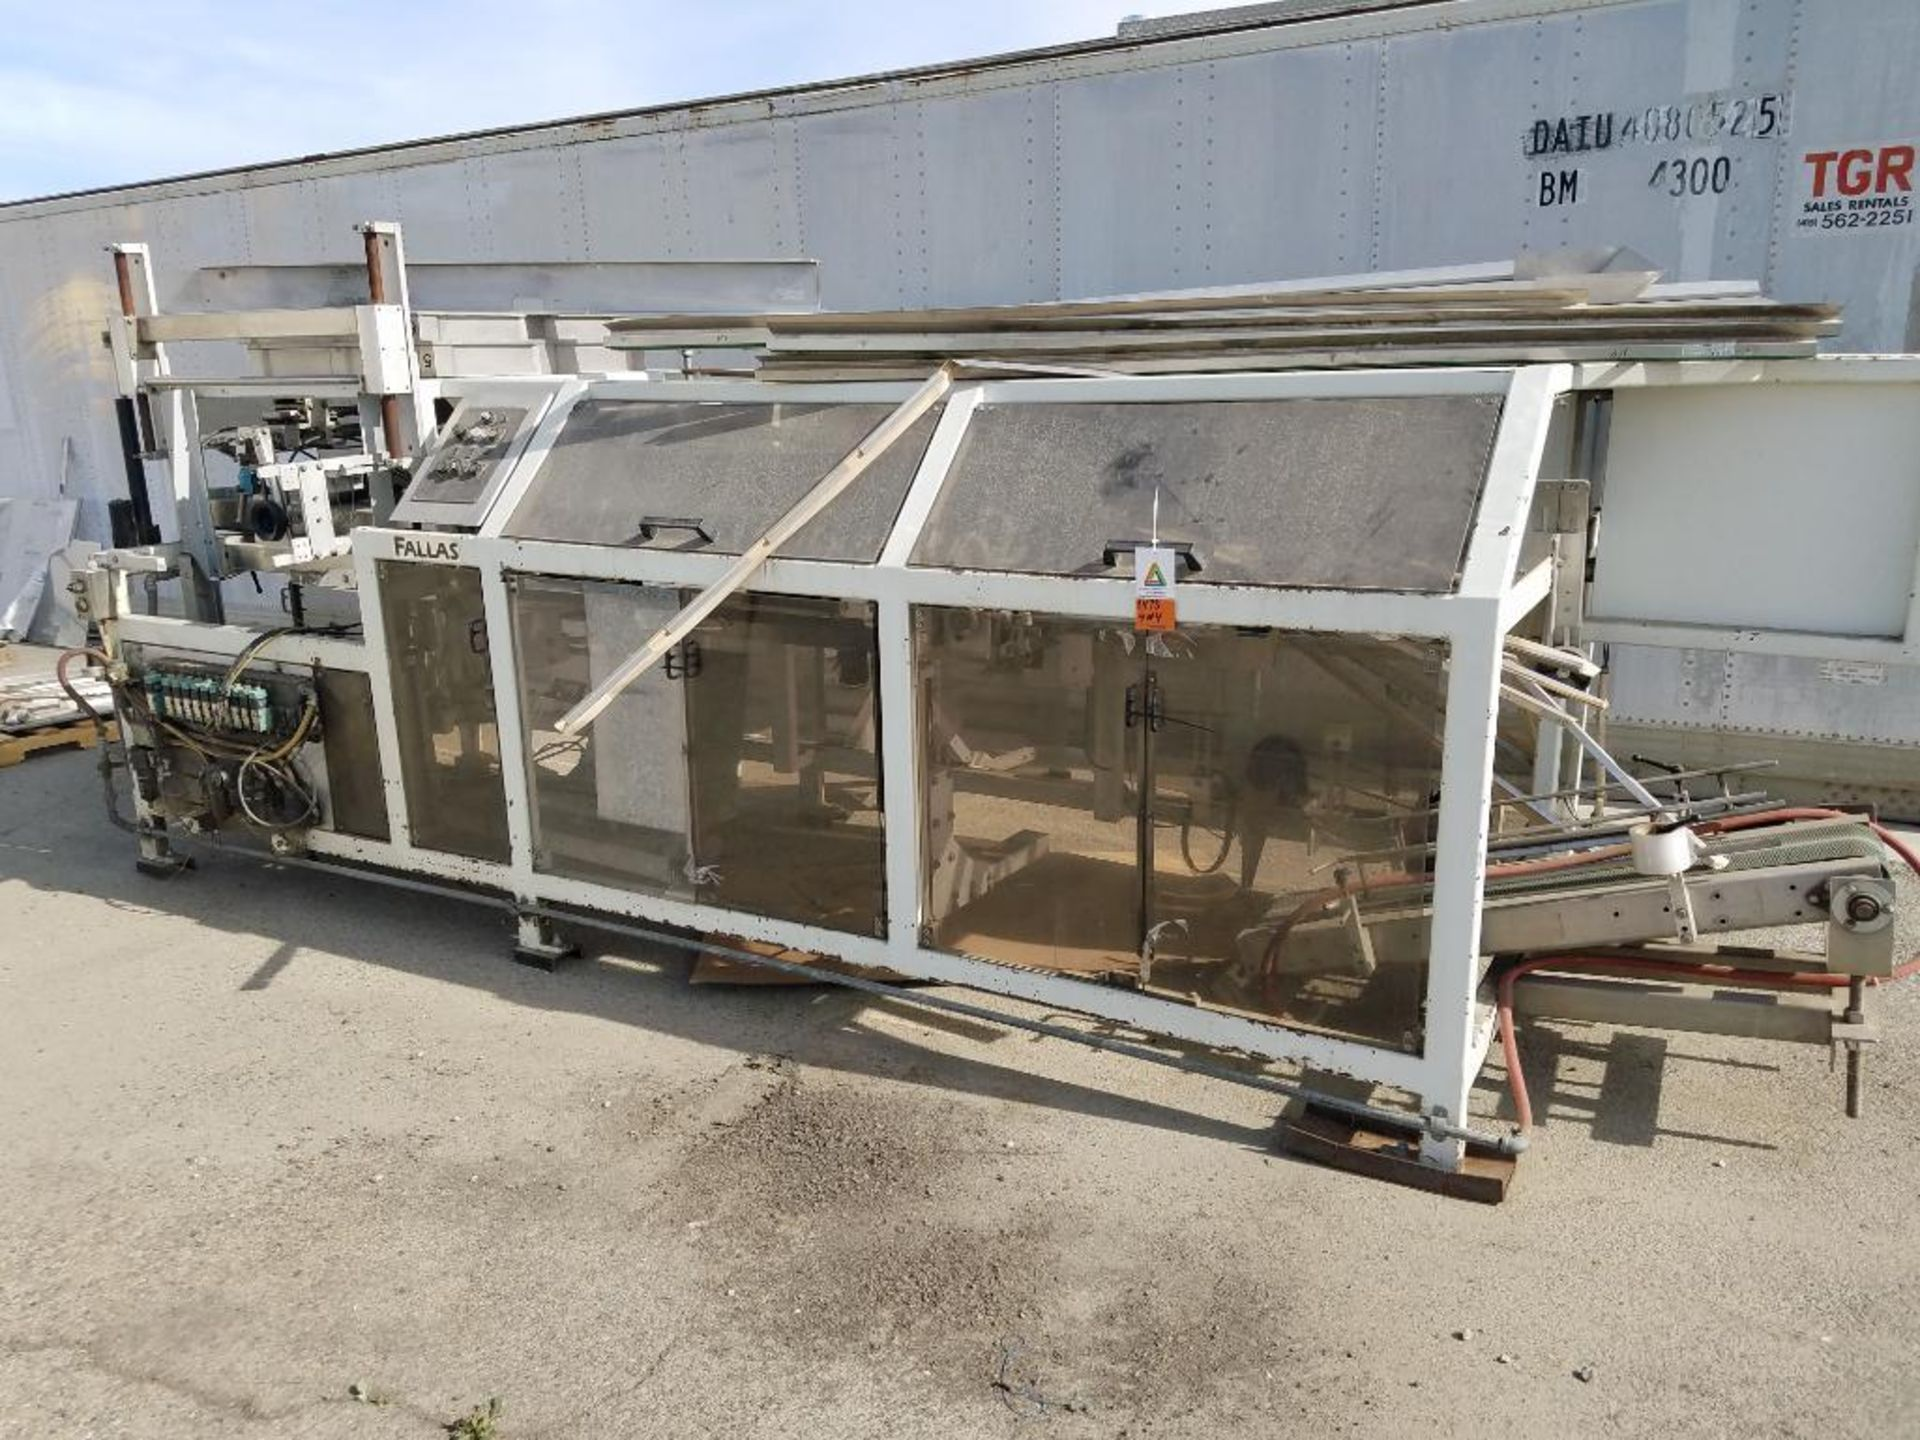 blower diverter with frame, aluminum mezzanine, steam washer, and Fallas cartoner - Image 4 of 13